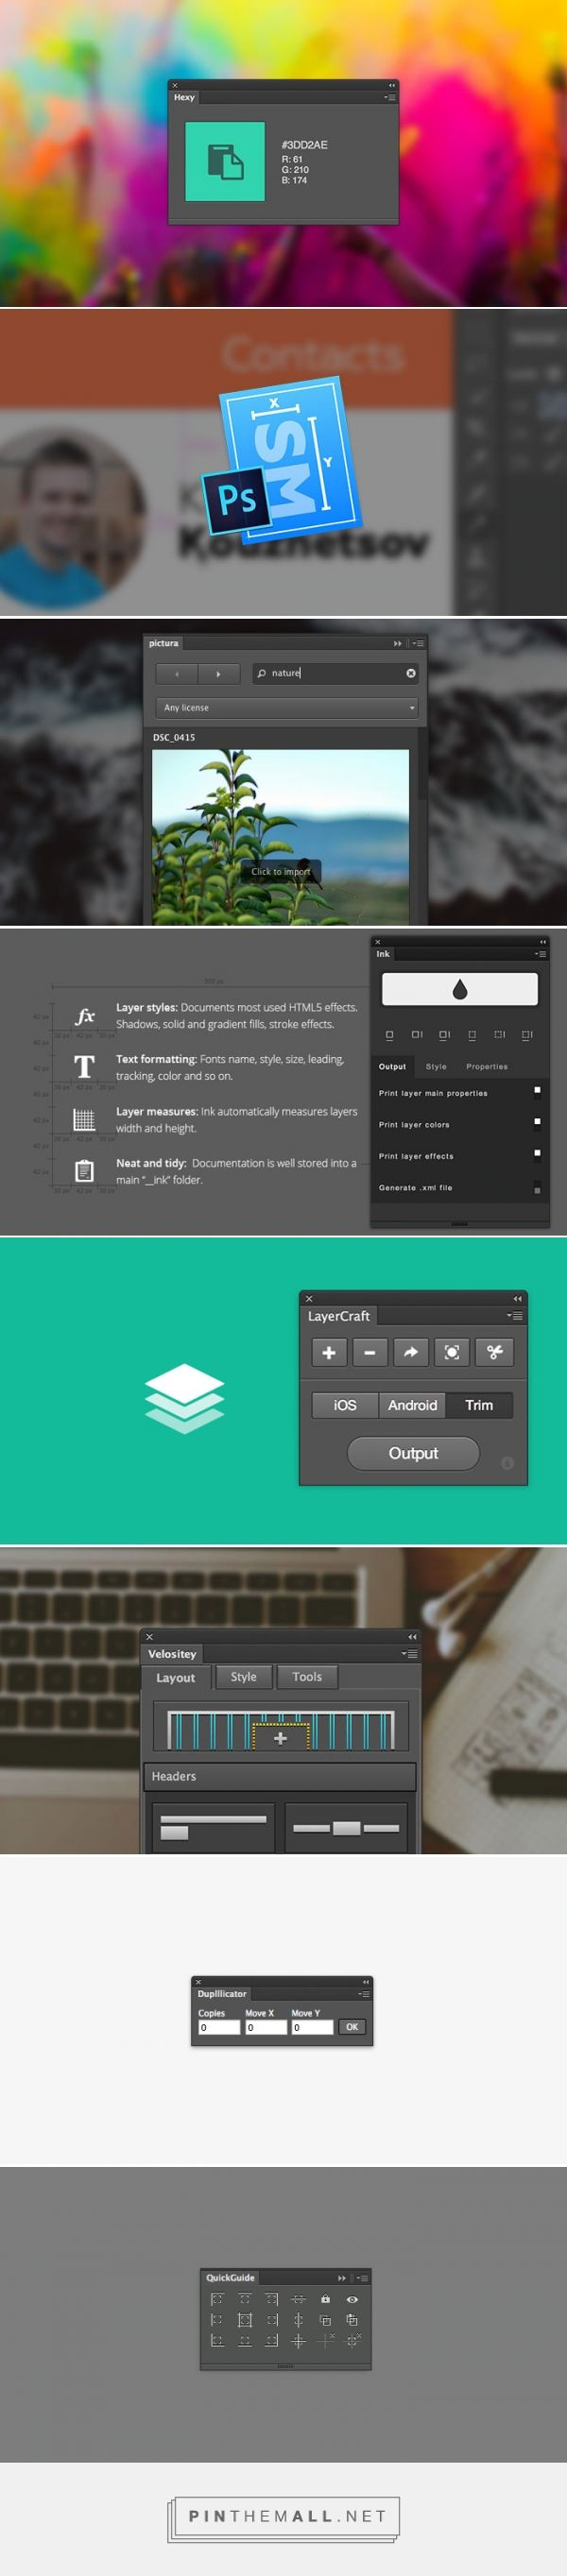 10+ Free Photoshop Plugins for Web Designers - Hongkiat - created via http://pinthemall.net